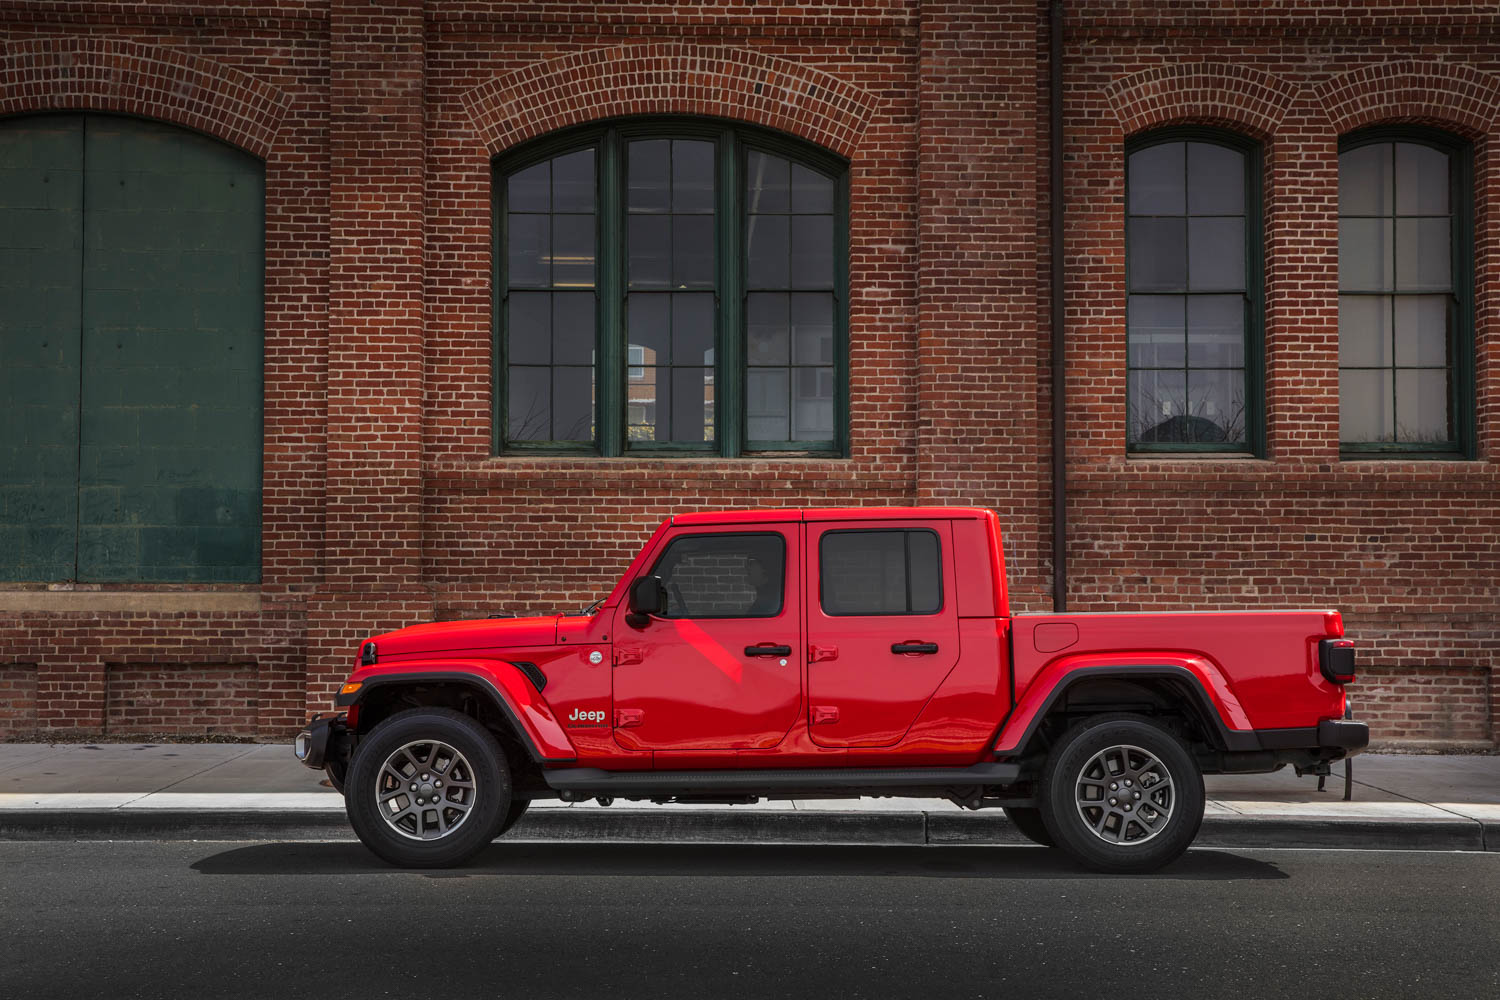 2020 Jeep Gladiator side profile